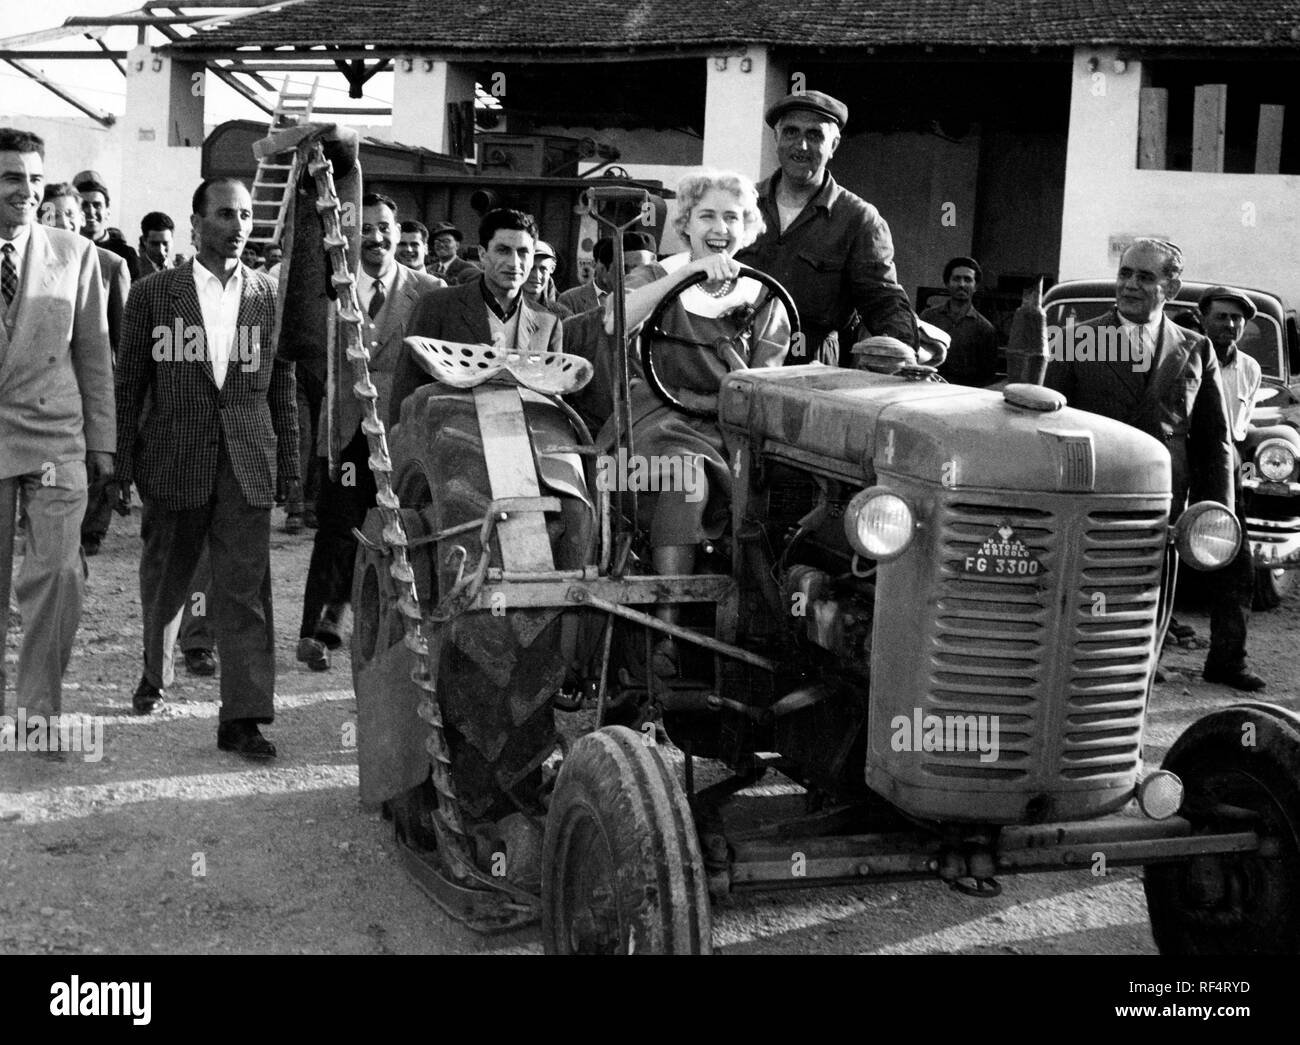 Clare Boothe Luce in lucania, 1964 Stock Photo